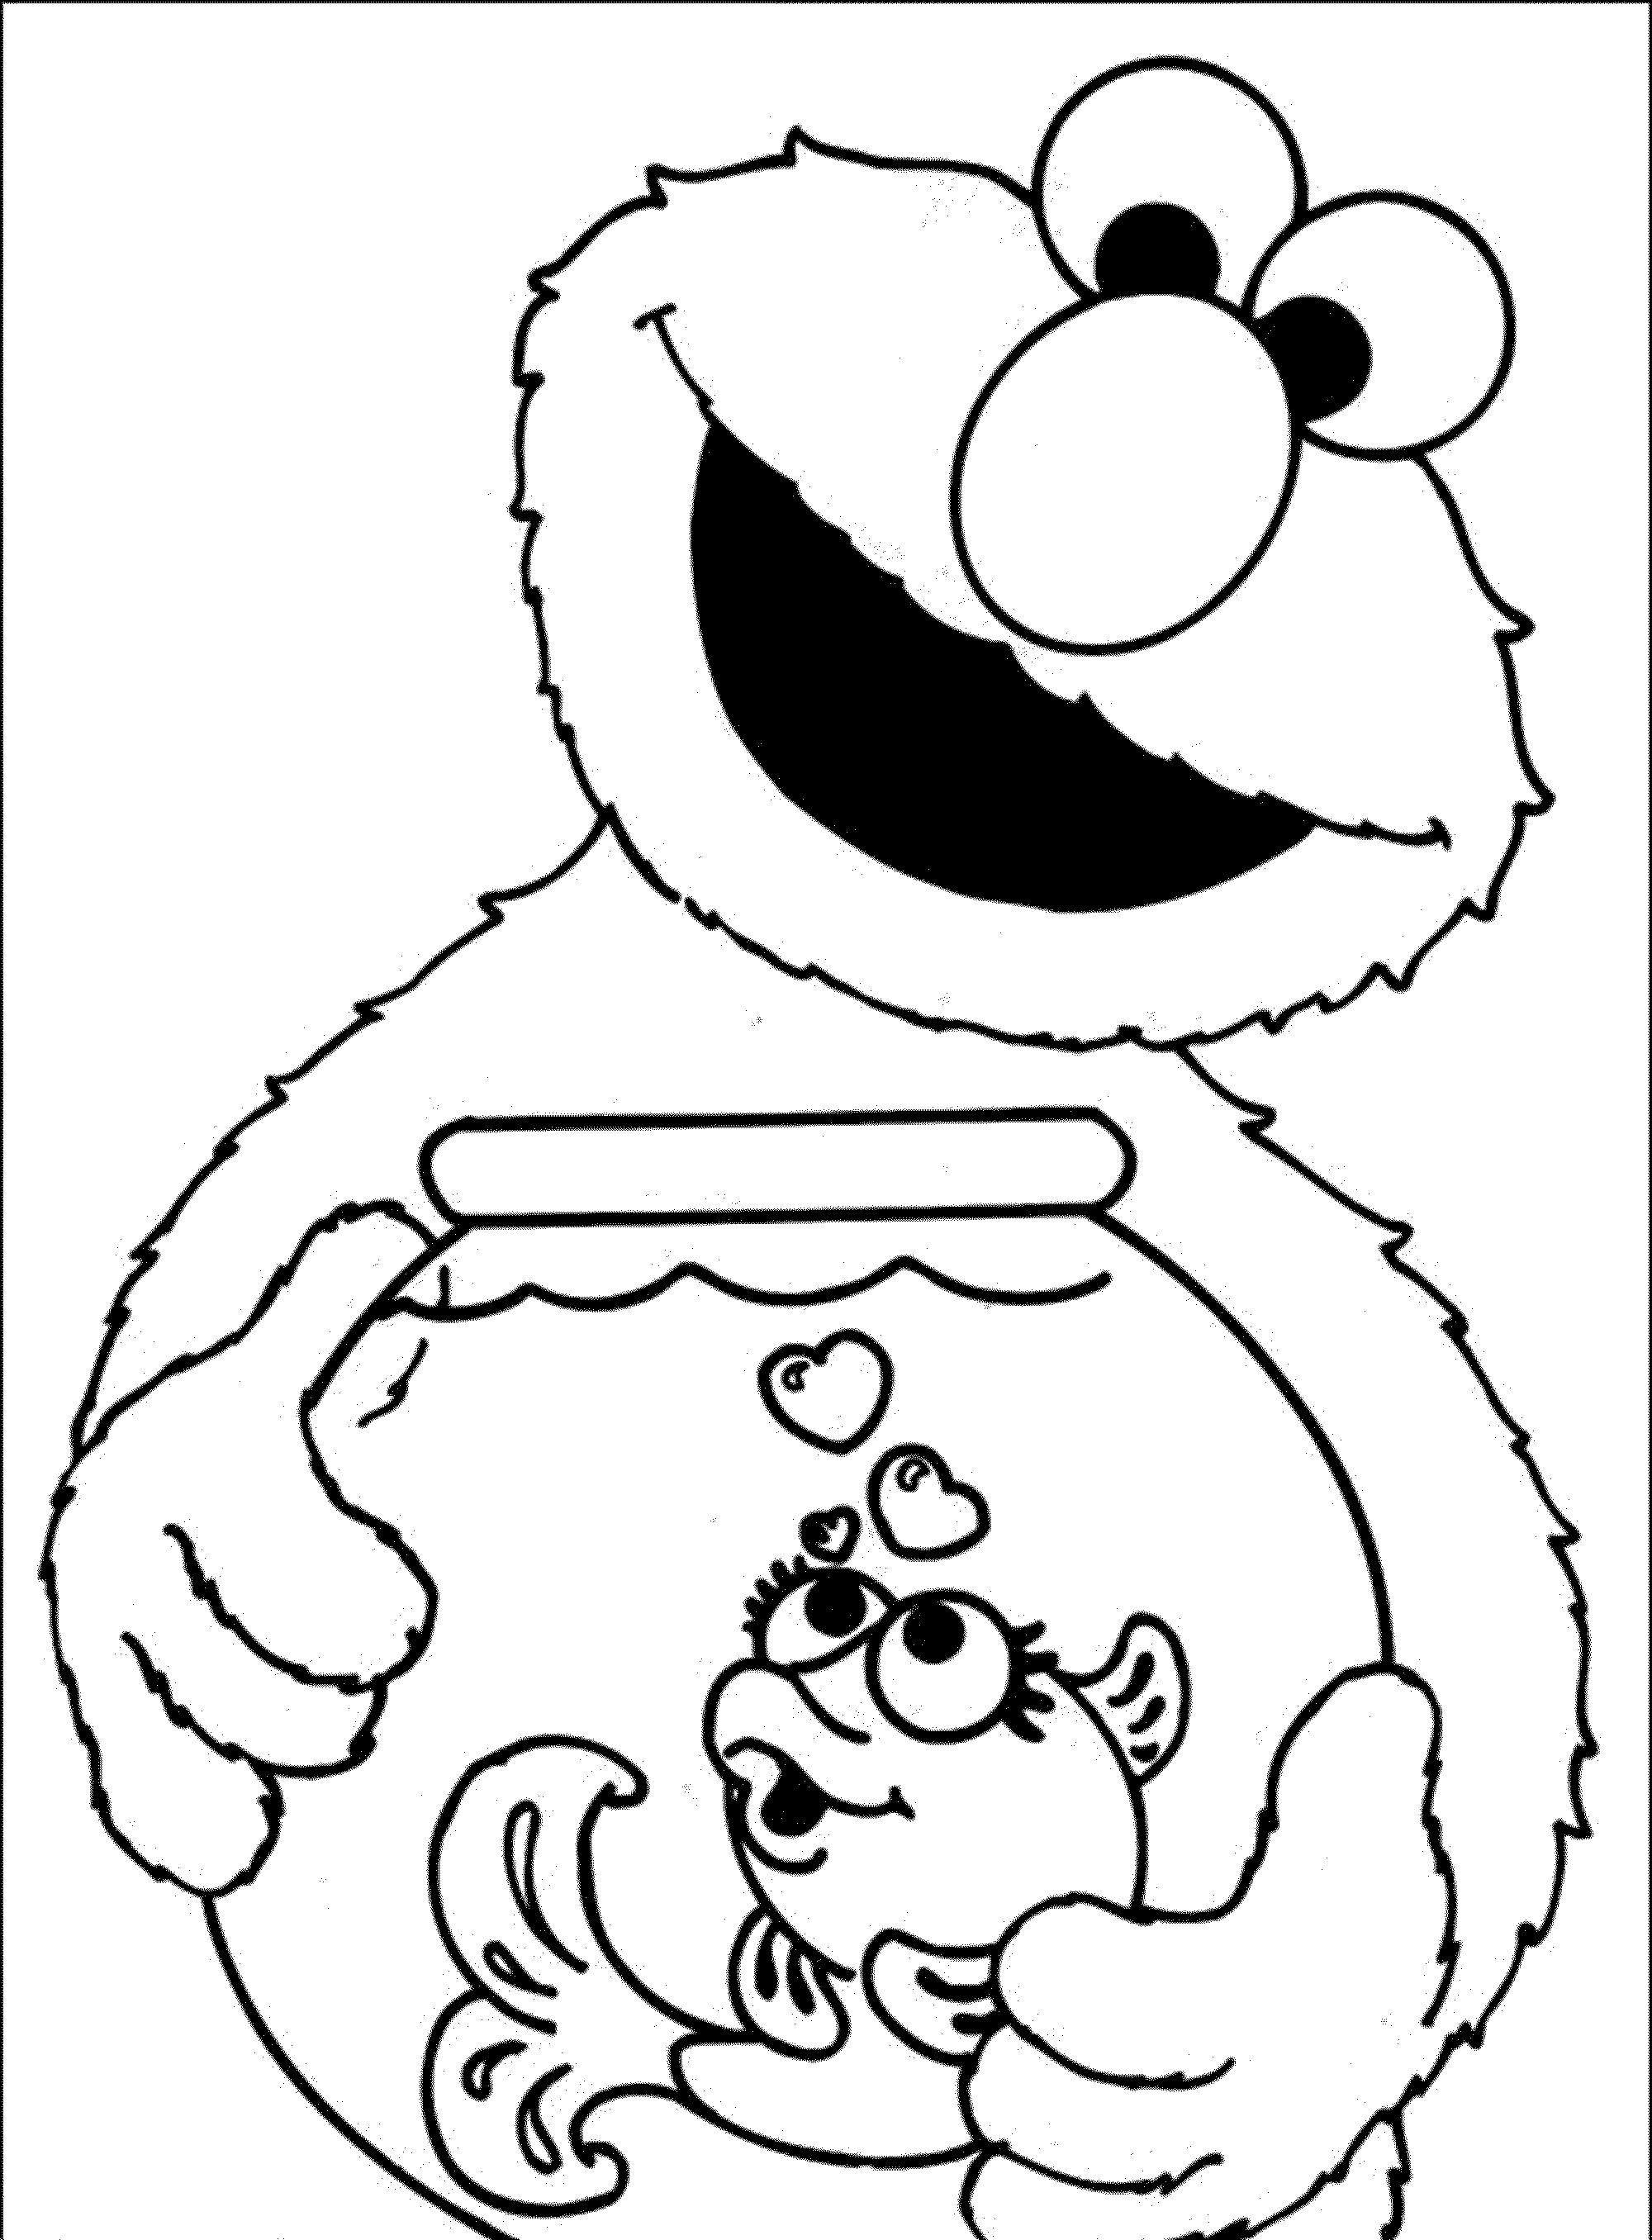 2000x2712 Elmo Coloring Pages Free Printable Charming Elmo Coloring Pages